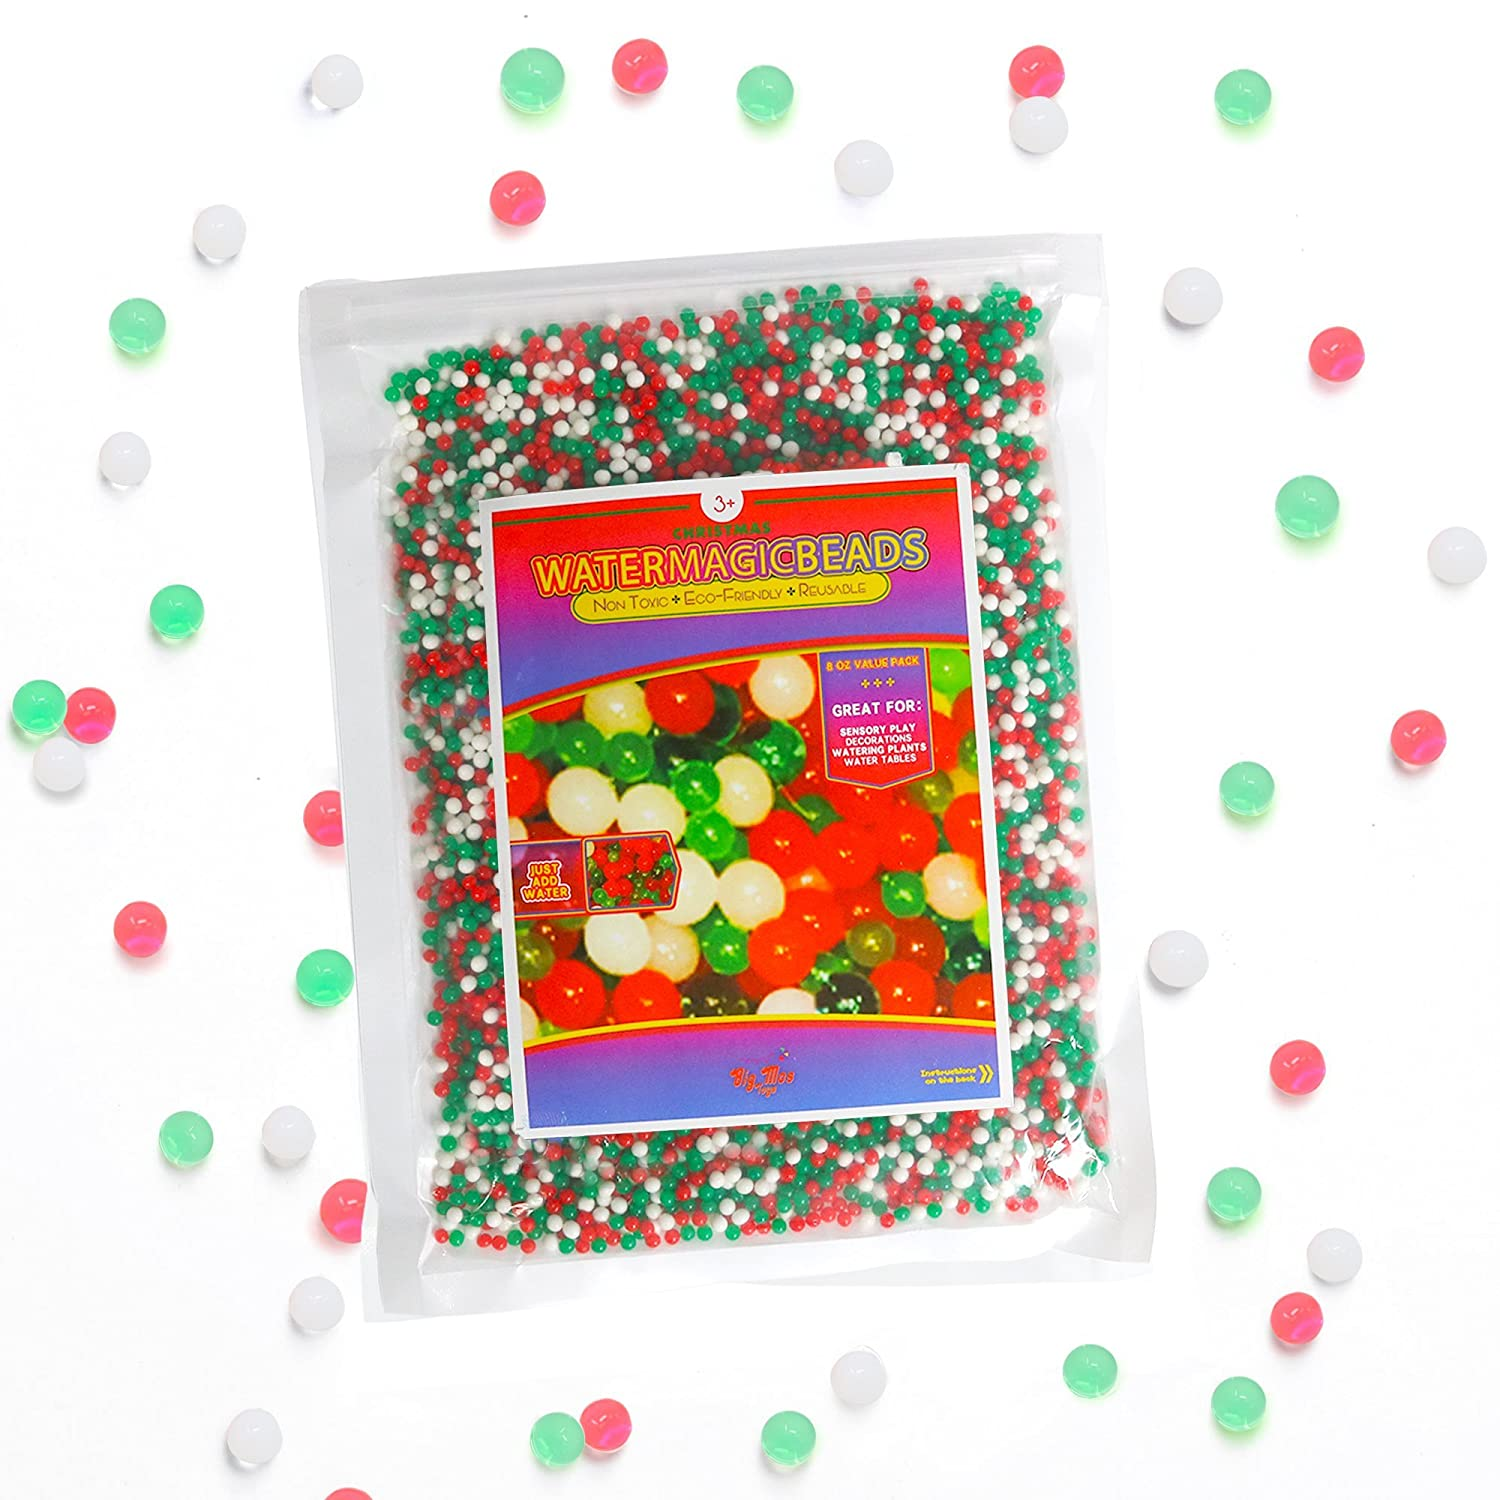 Big Mo's Toys Floral Christmas Pearl Water Beads - Red Green and White Christmas Gel Balls for Vase Or Candle Fillers for Centerpiece Big Mo' s Toys